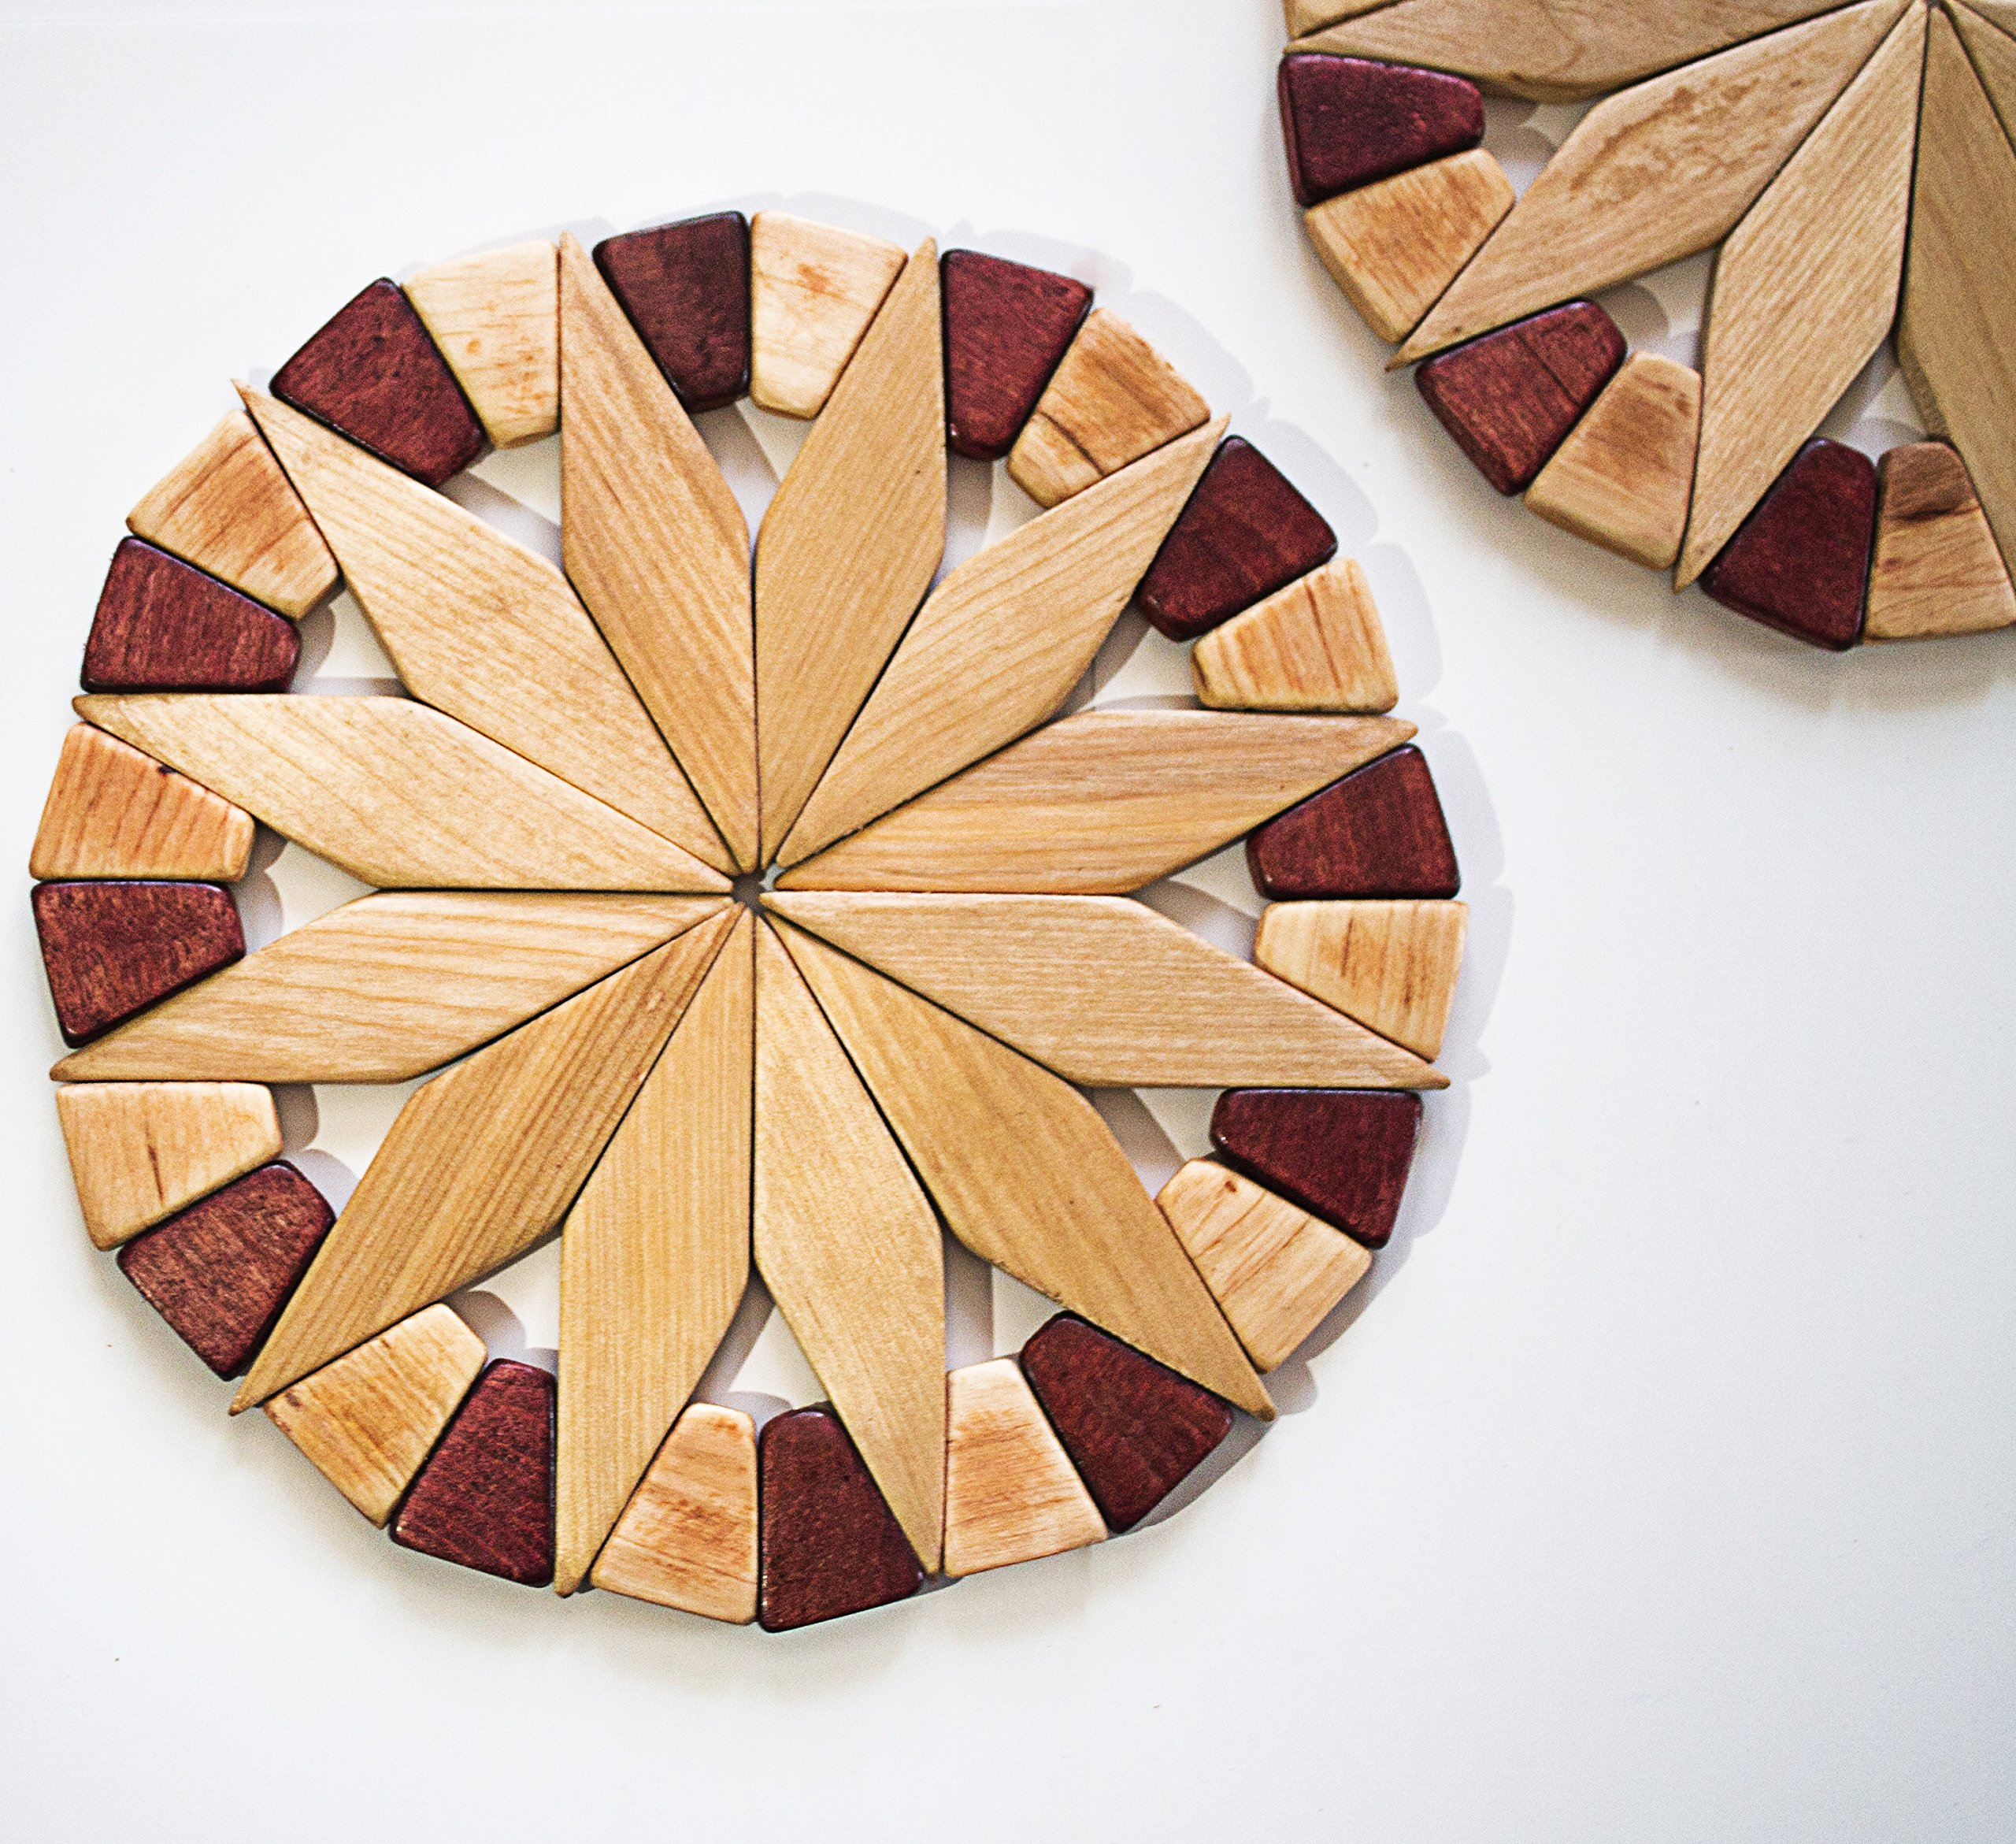 Natural Wood Trivets For Hot Dishes - 2 Eco-friendly, Sturdy and Durable 7'' Kitchen Hot Pads. Handmade Festive Design Table Decor - Perfect Kitchen Gifts Idea. by ECOSALL (Image #8)